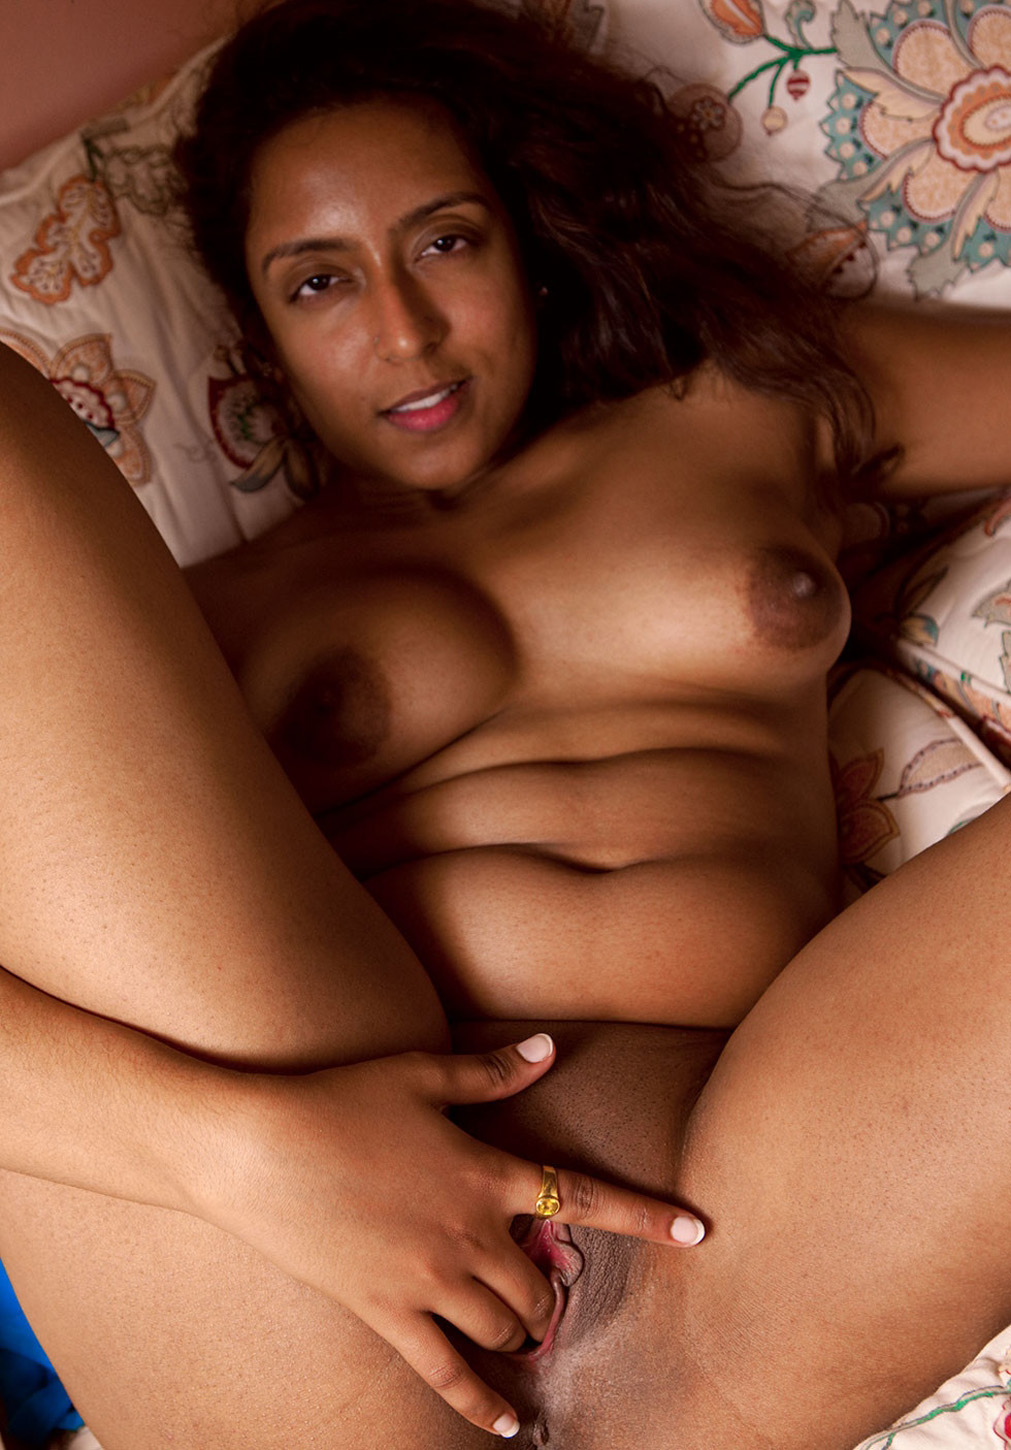 pak lady nude photo